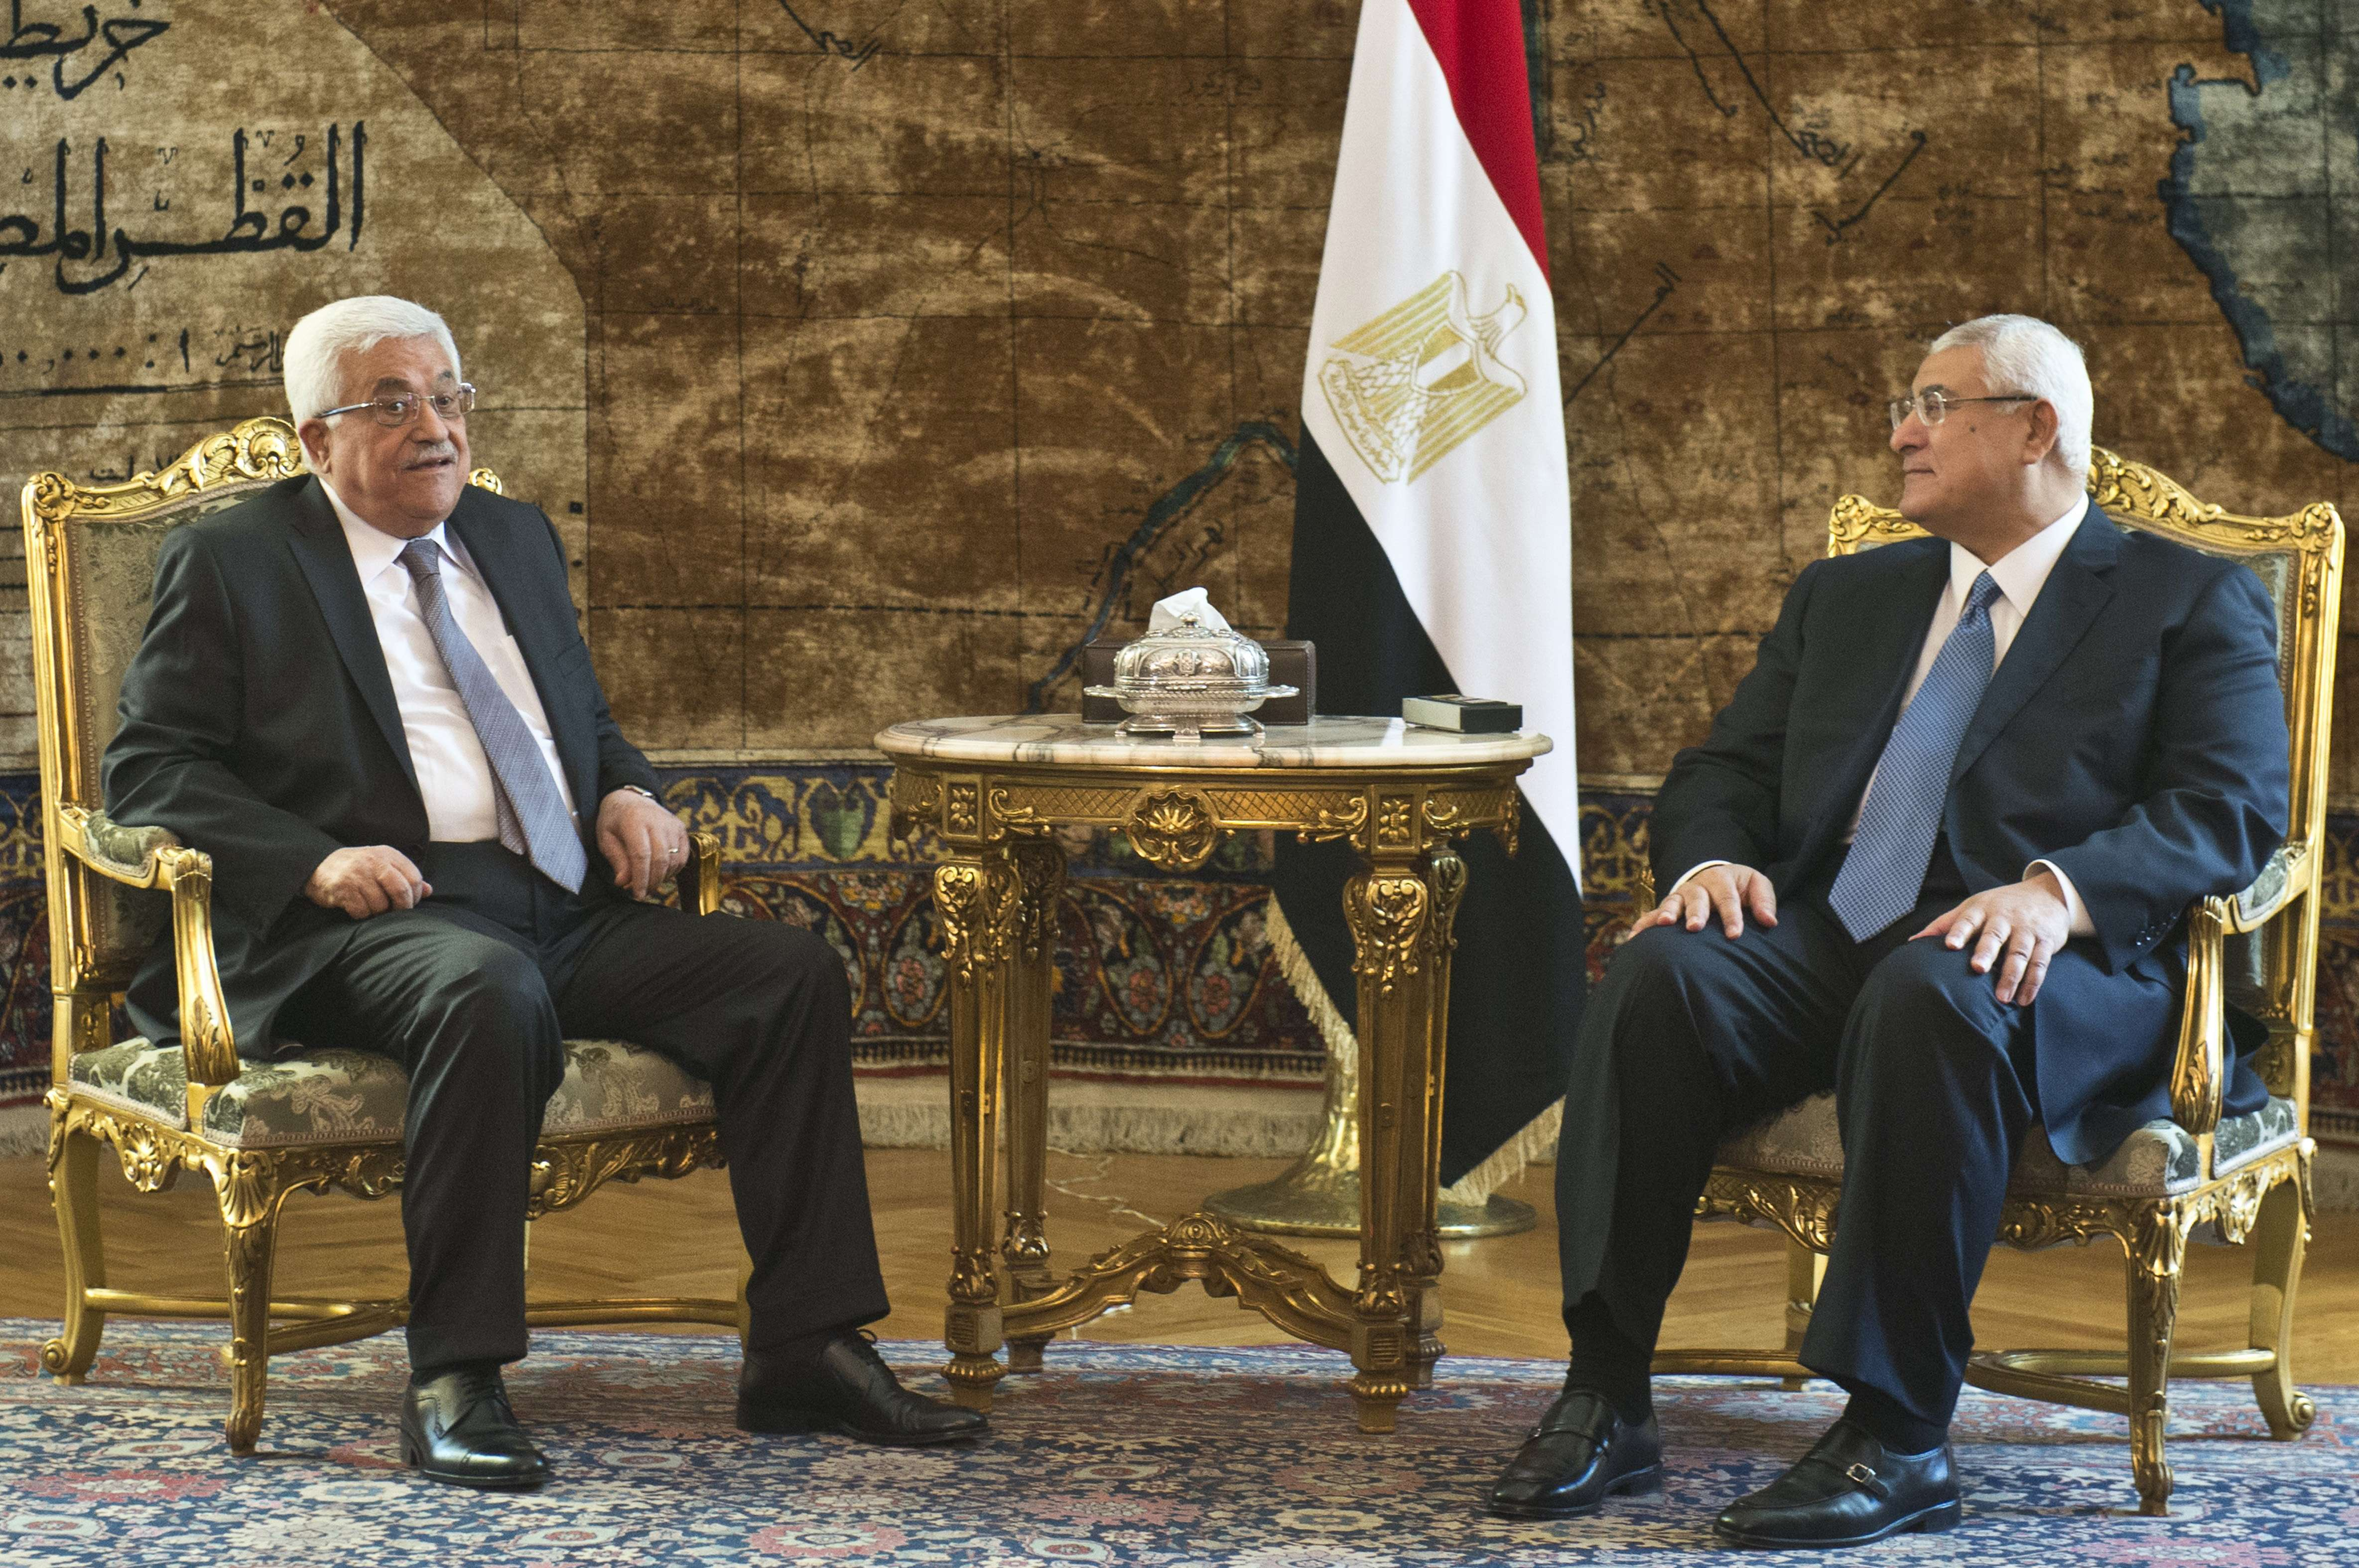 Egypt's interim president Adly Mansour (C-R) and vice president Mohamed El-Baradei (R) meet with Palestinian president Mahmud Abbas (L) at the presidential palace in Cairo on July 29, 2013.  (AFP Photo)